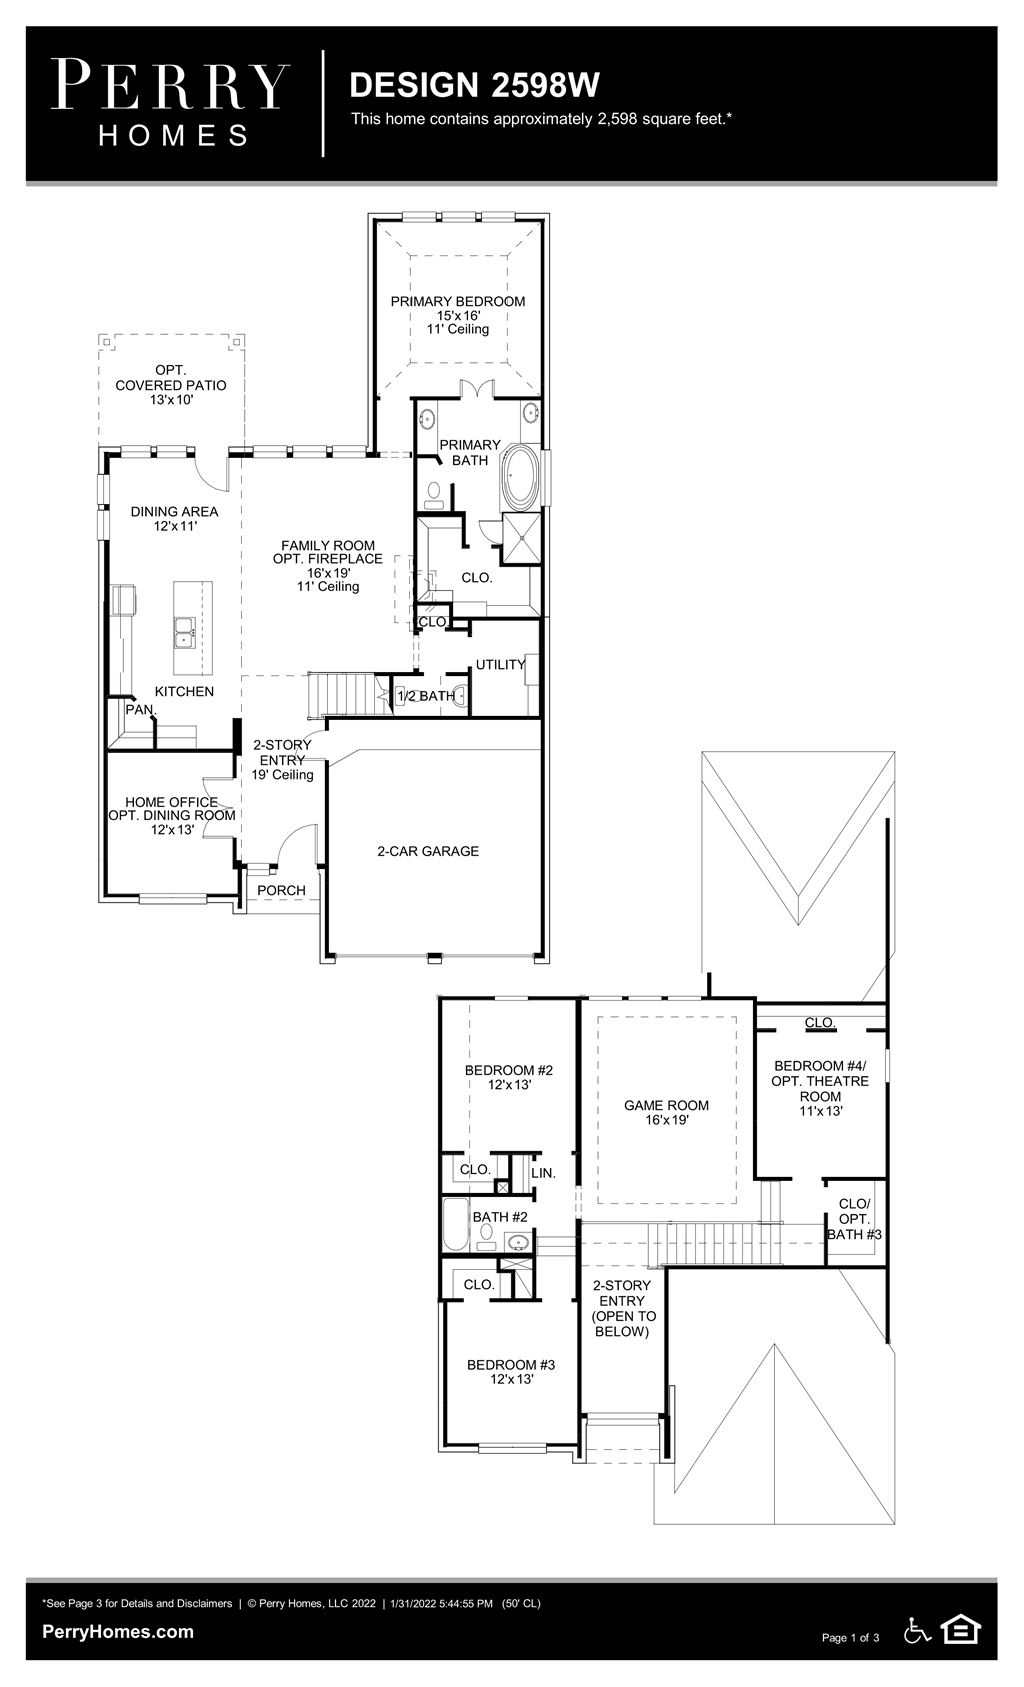 Floor Plan for 2598W